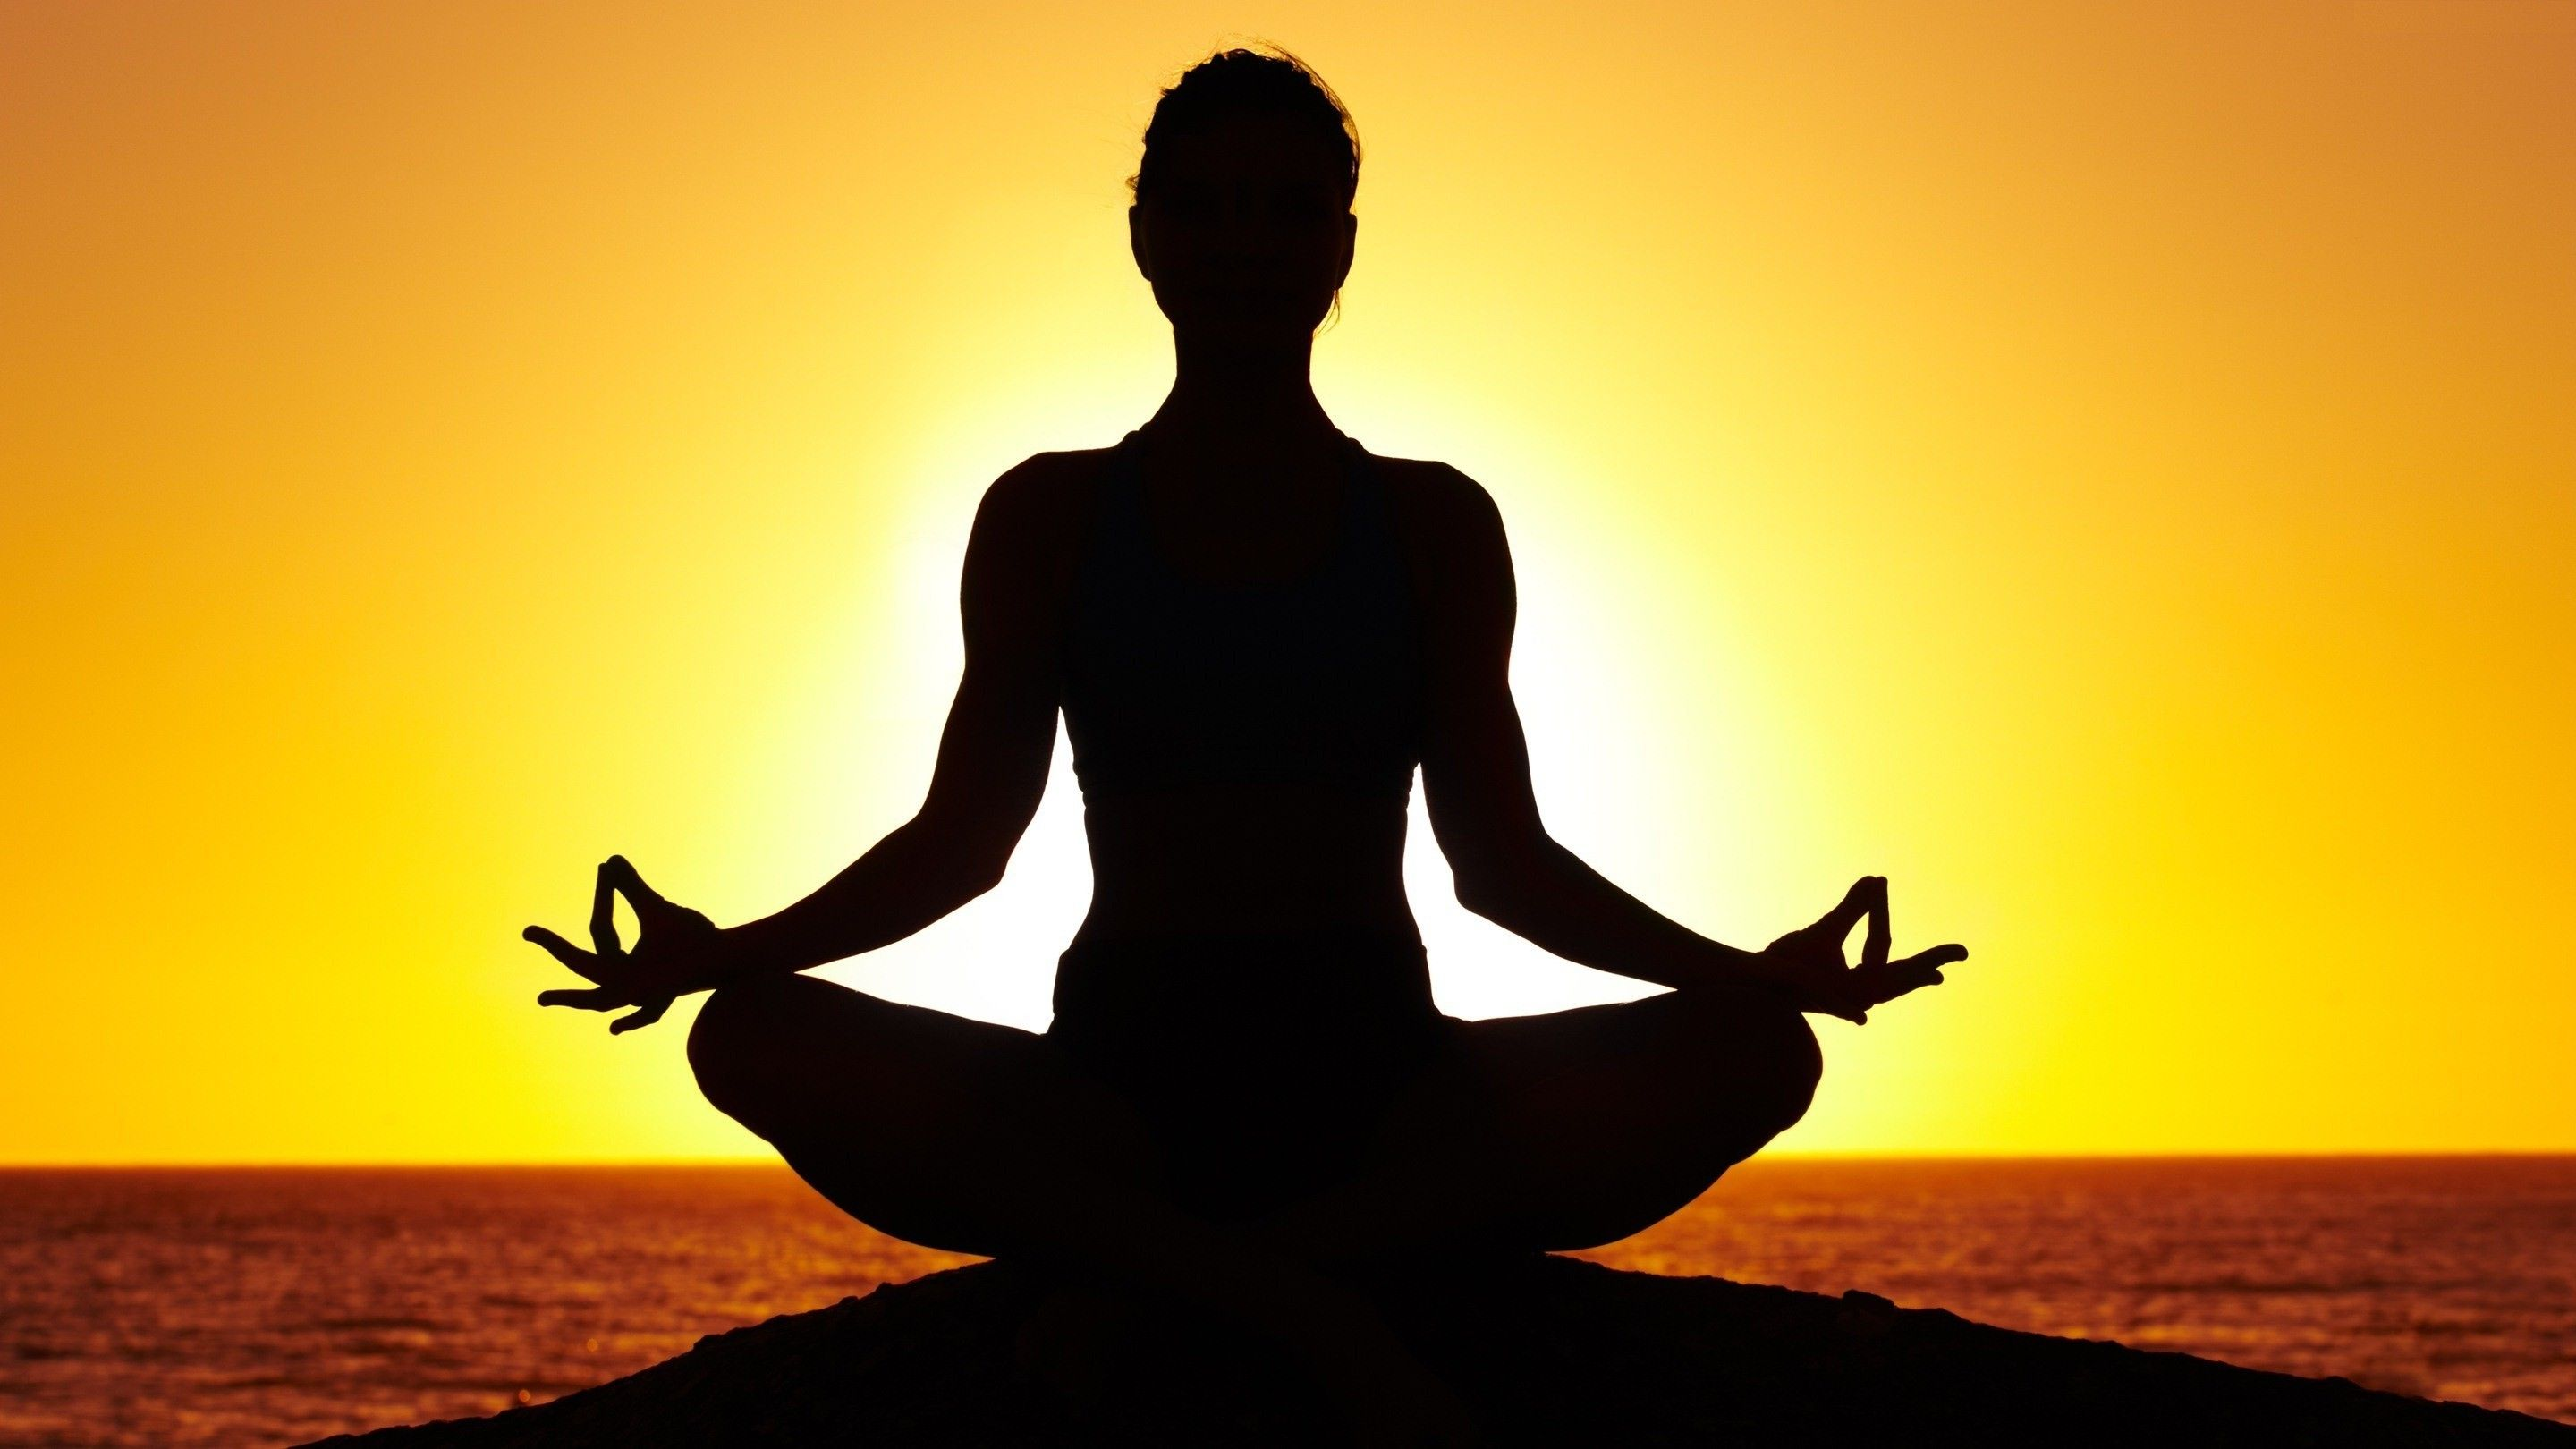 2880x1620 56+ Yoga Background Wallpapers on WallpaperPlay